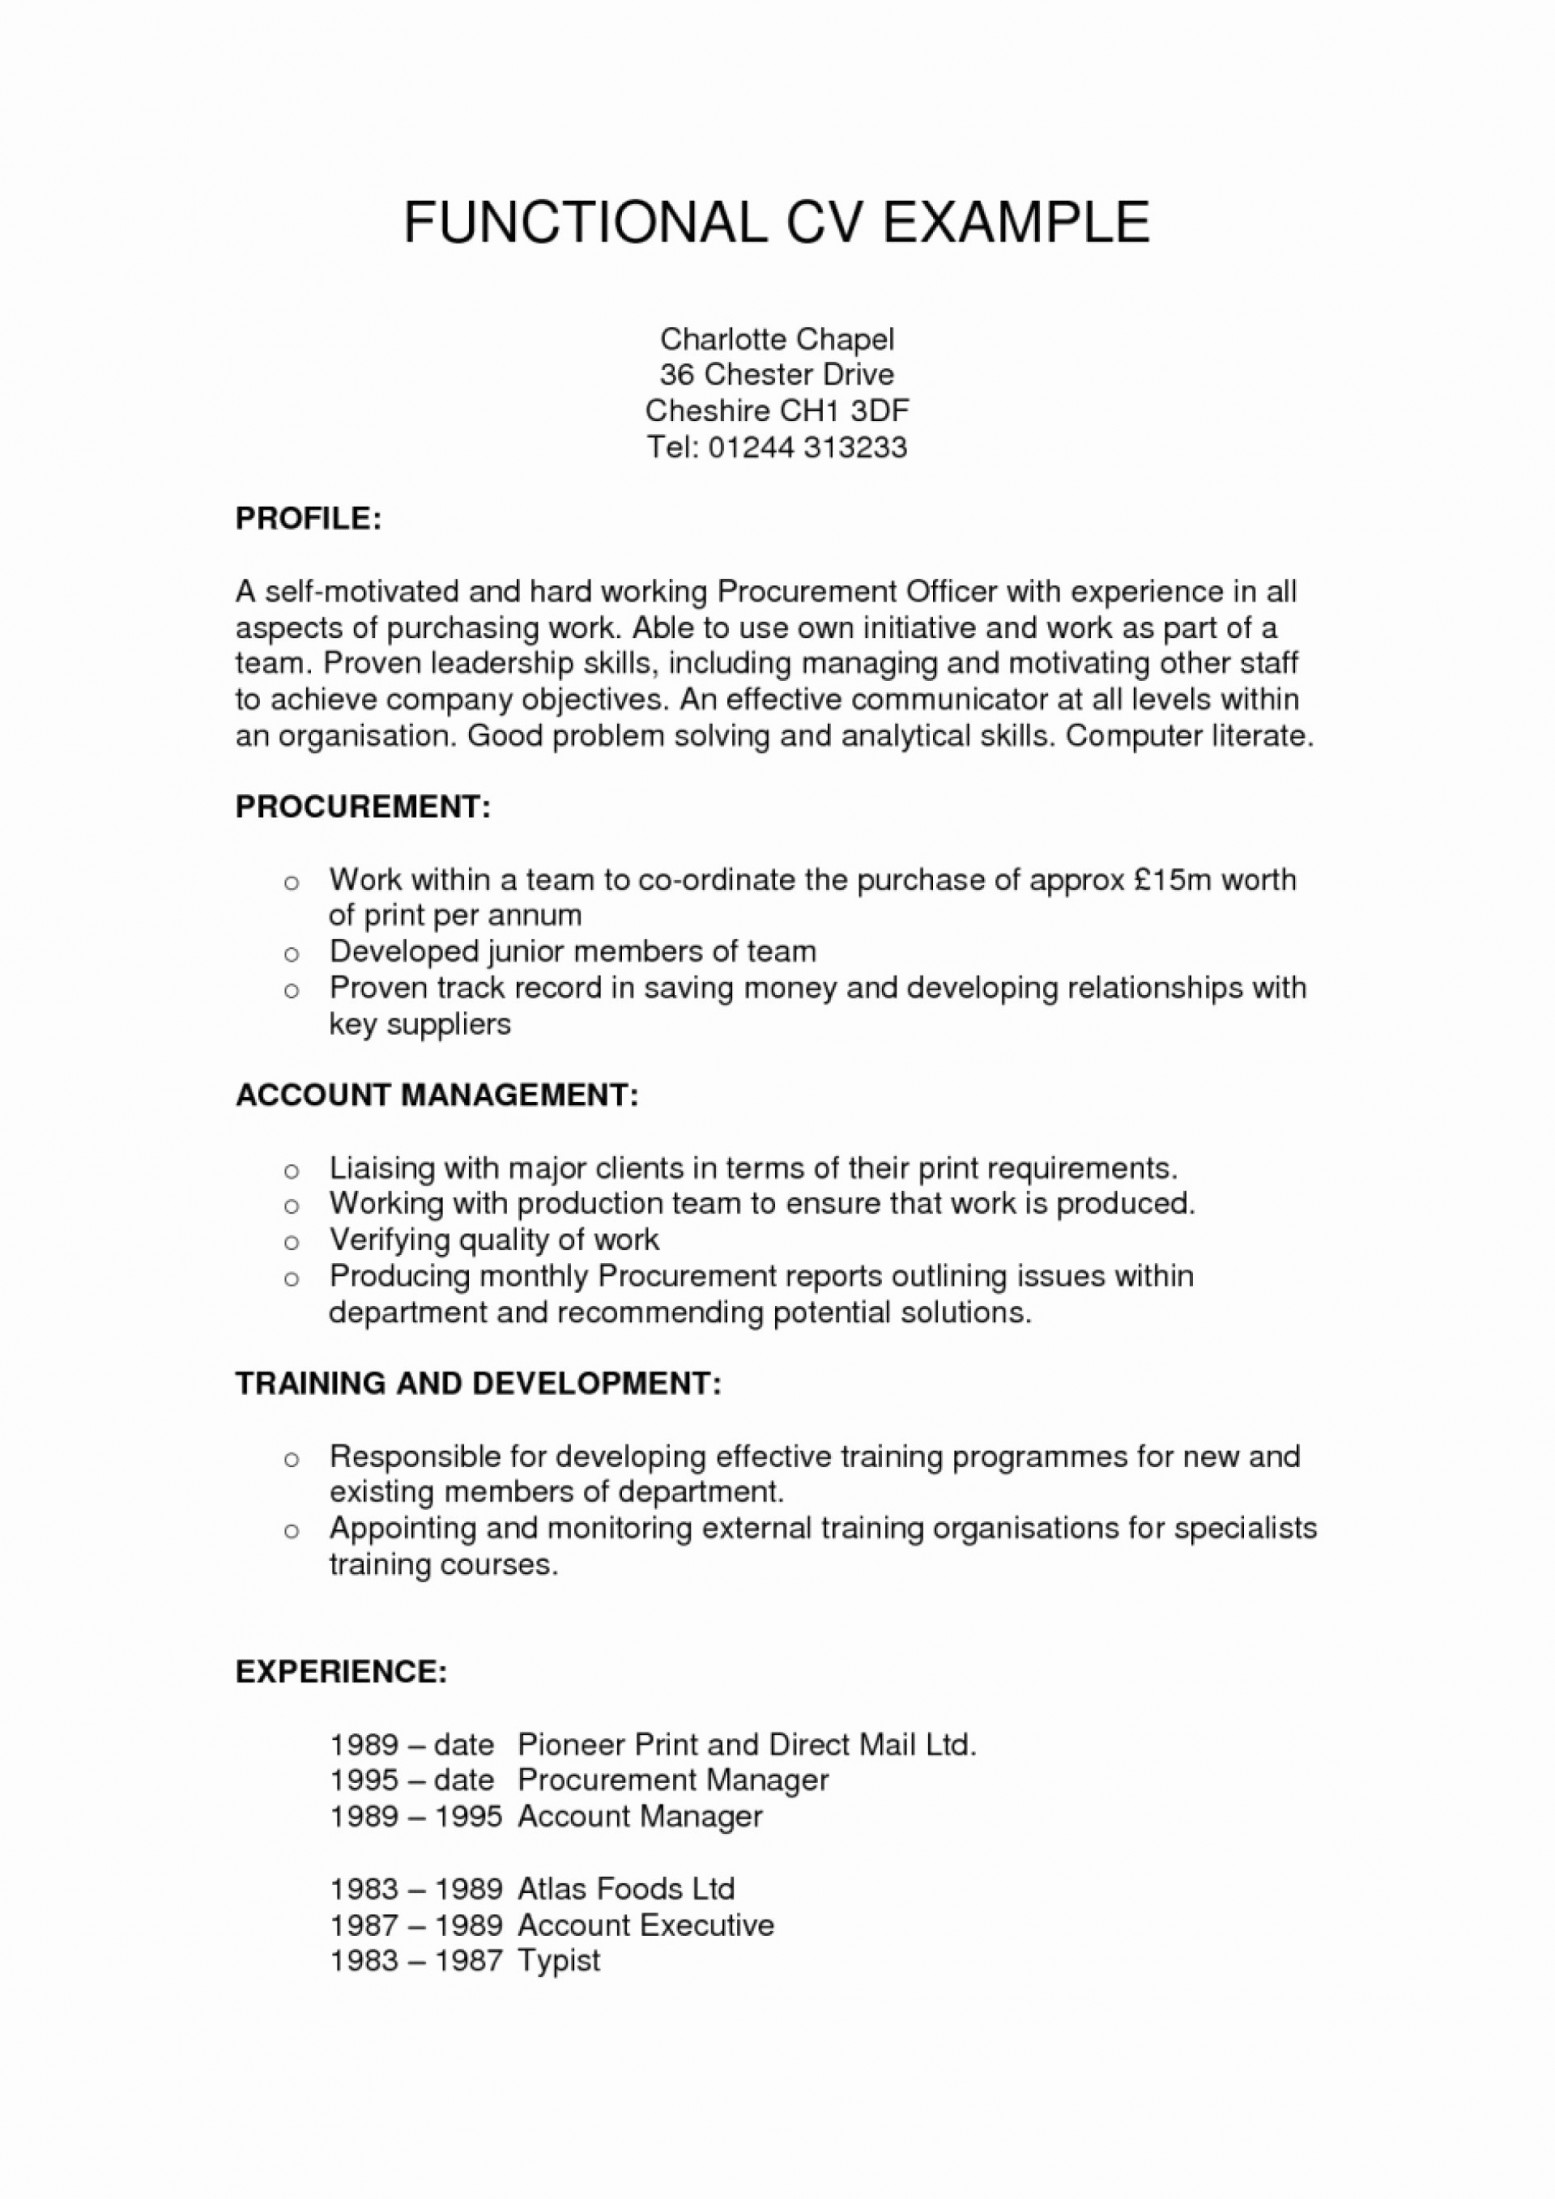 Functional Resume Template Functional Resume Template Free Simple Template Design Template Functional Resume functional resume template|wikiresume.com